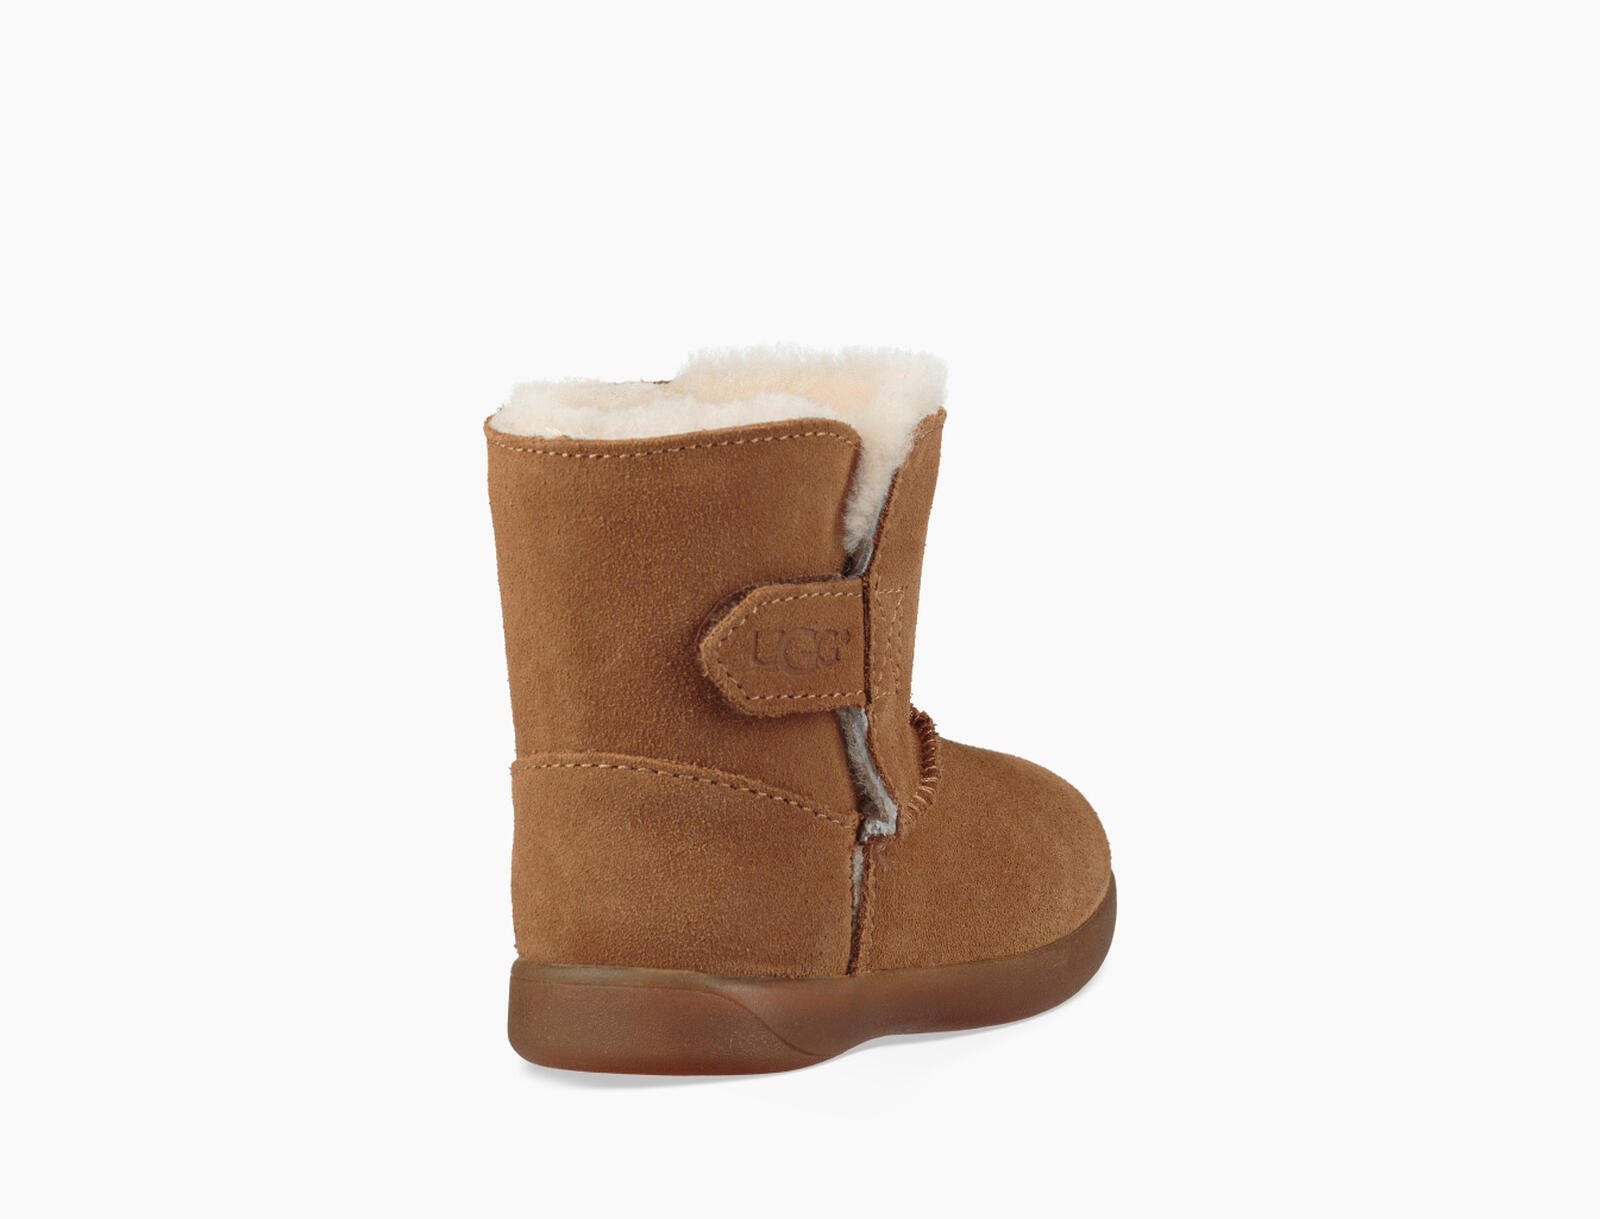 Keelan Ankle Boot